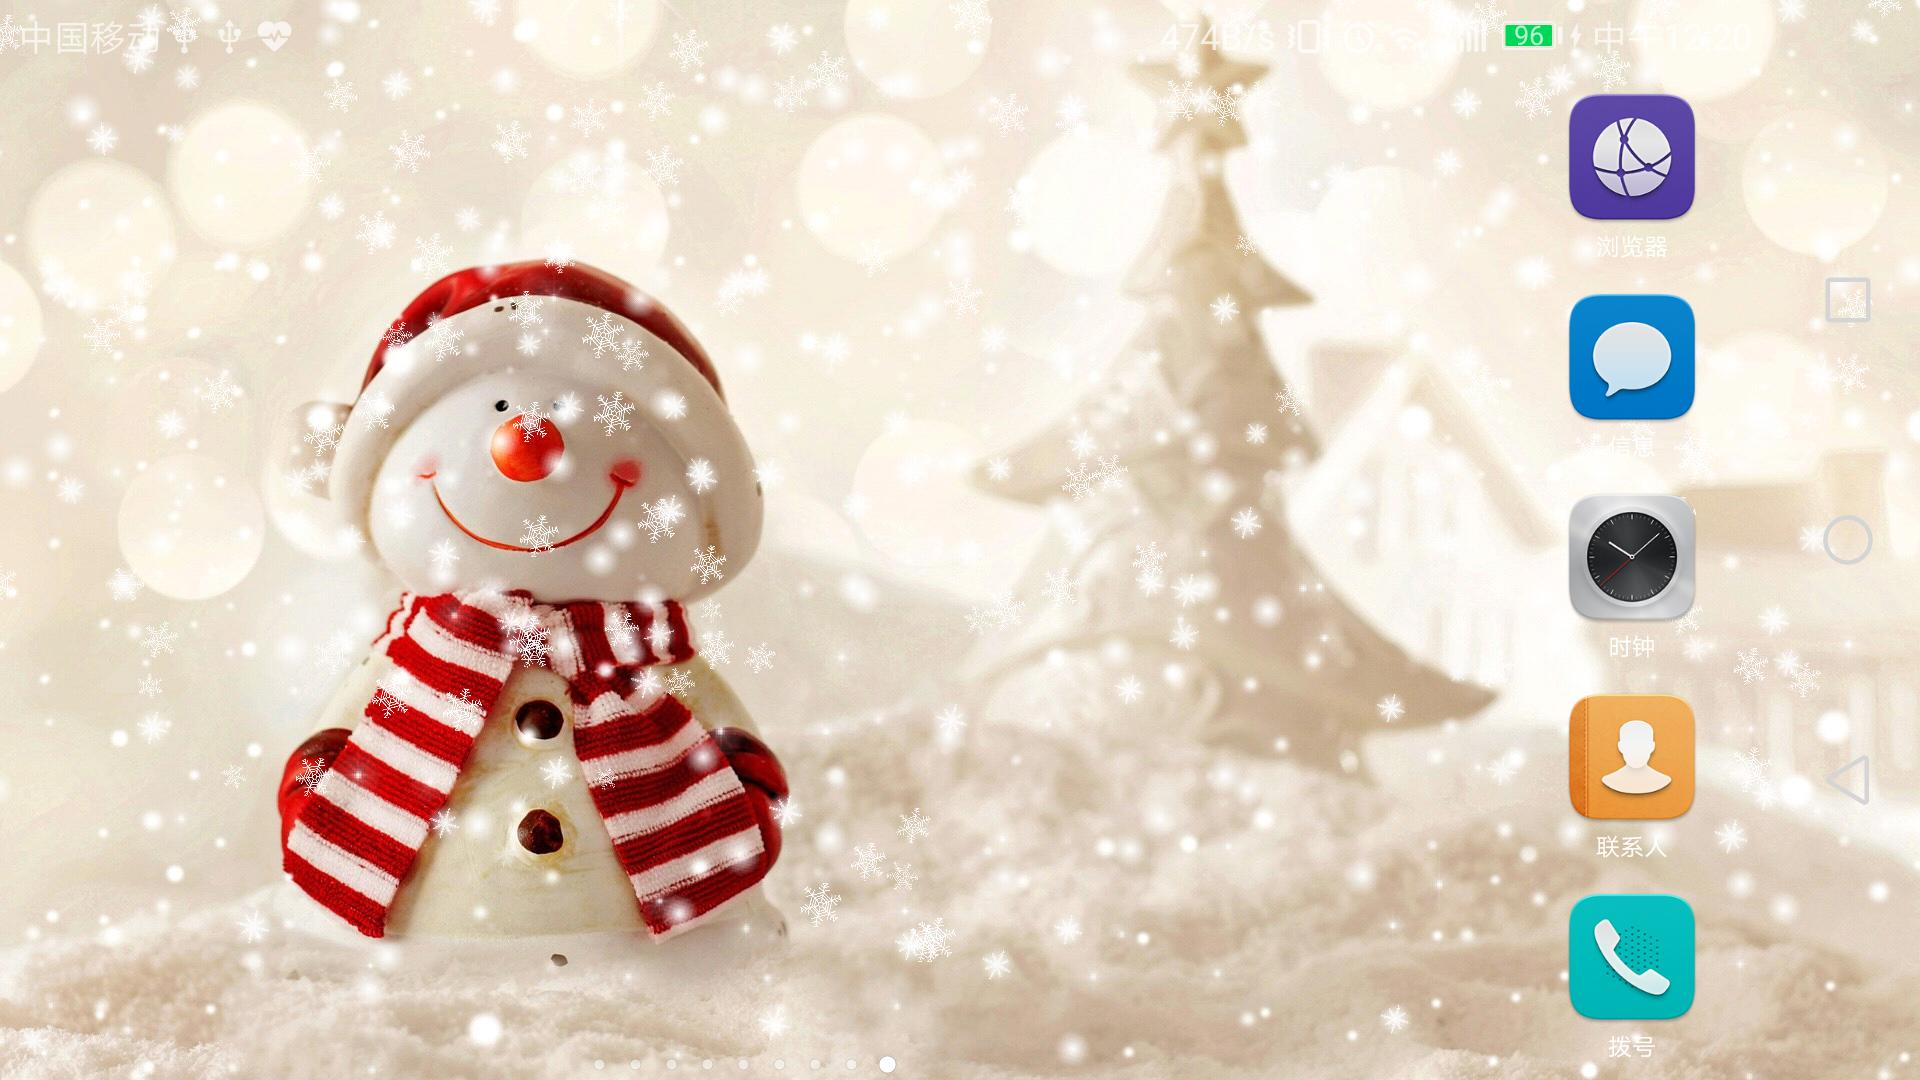 2017 Christmas Snow Live Wallpaper Gratis For Android Apk